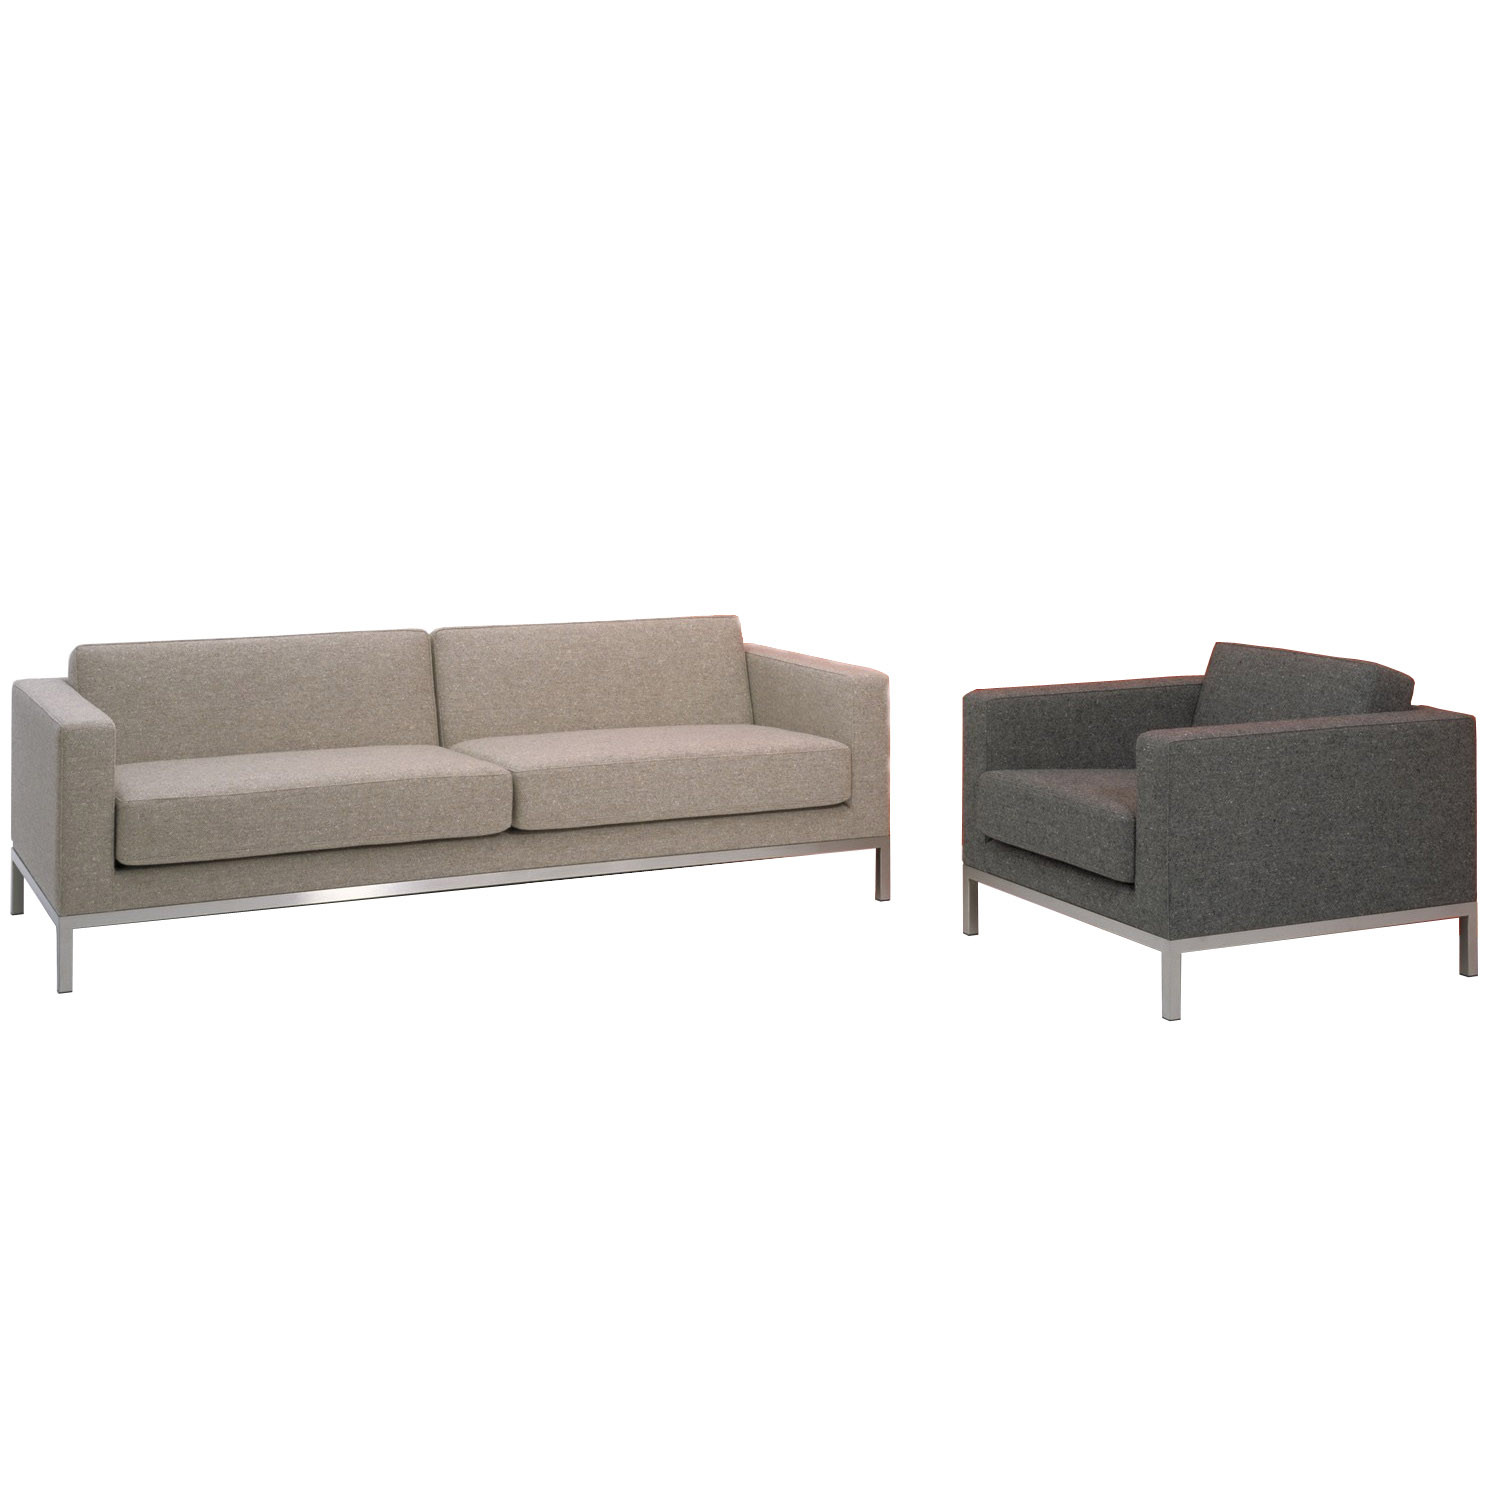 HM26 Sofa and Armchair